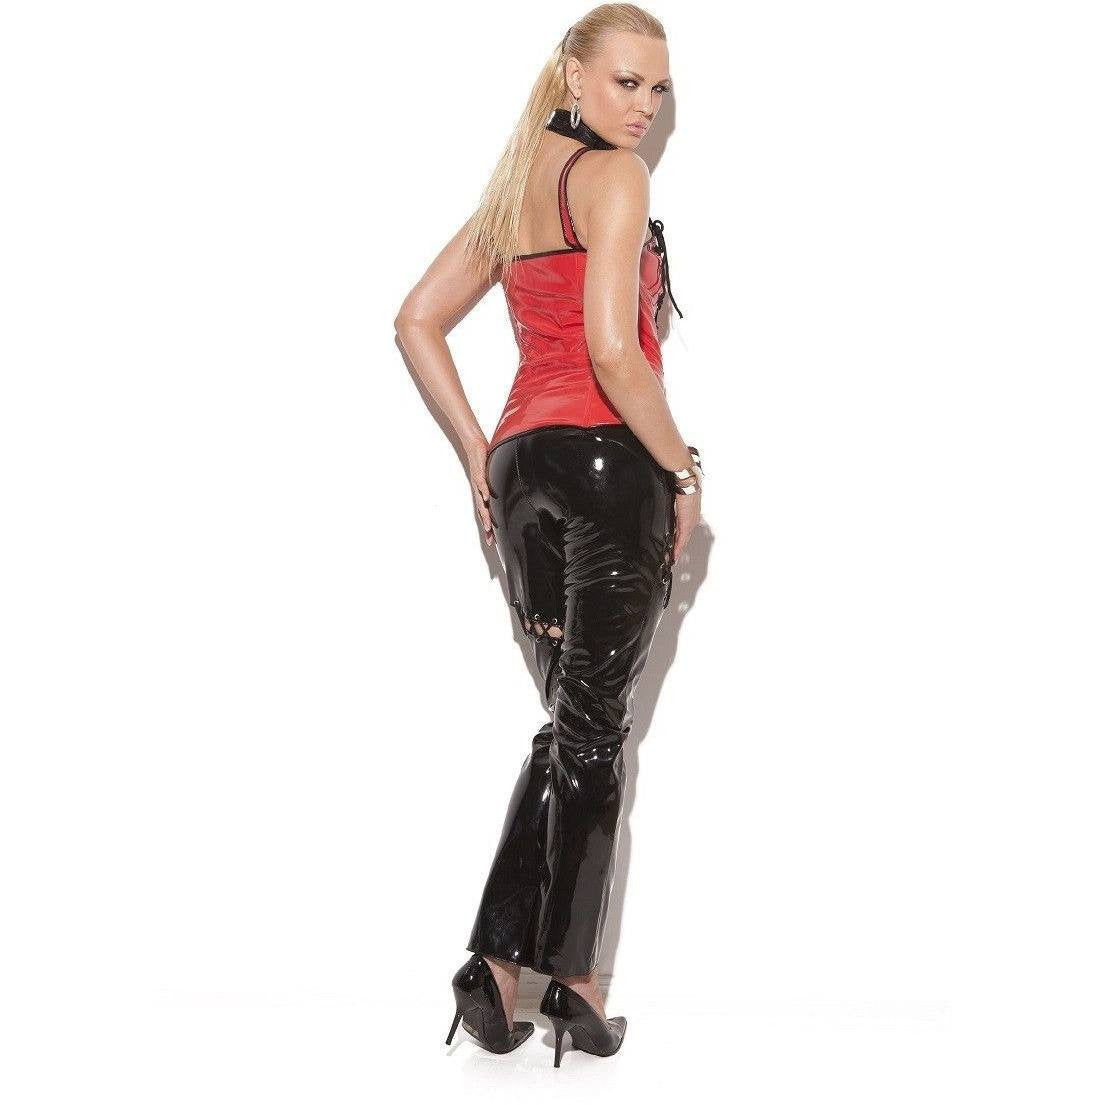 Vinyl black jean pants for <span class=money>€29.95 EUR</span> at Flirtywomen